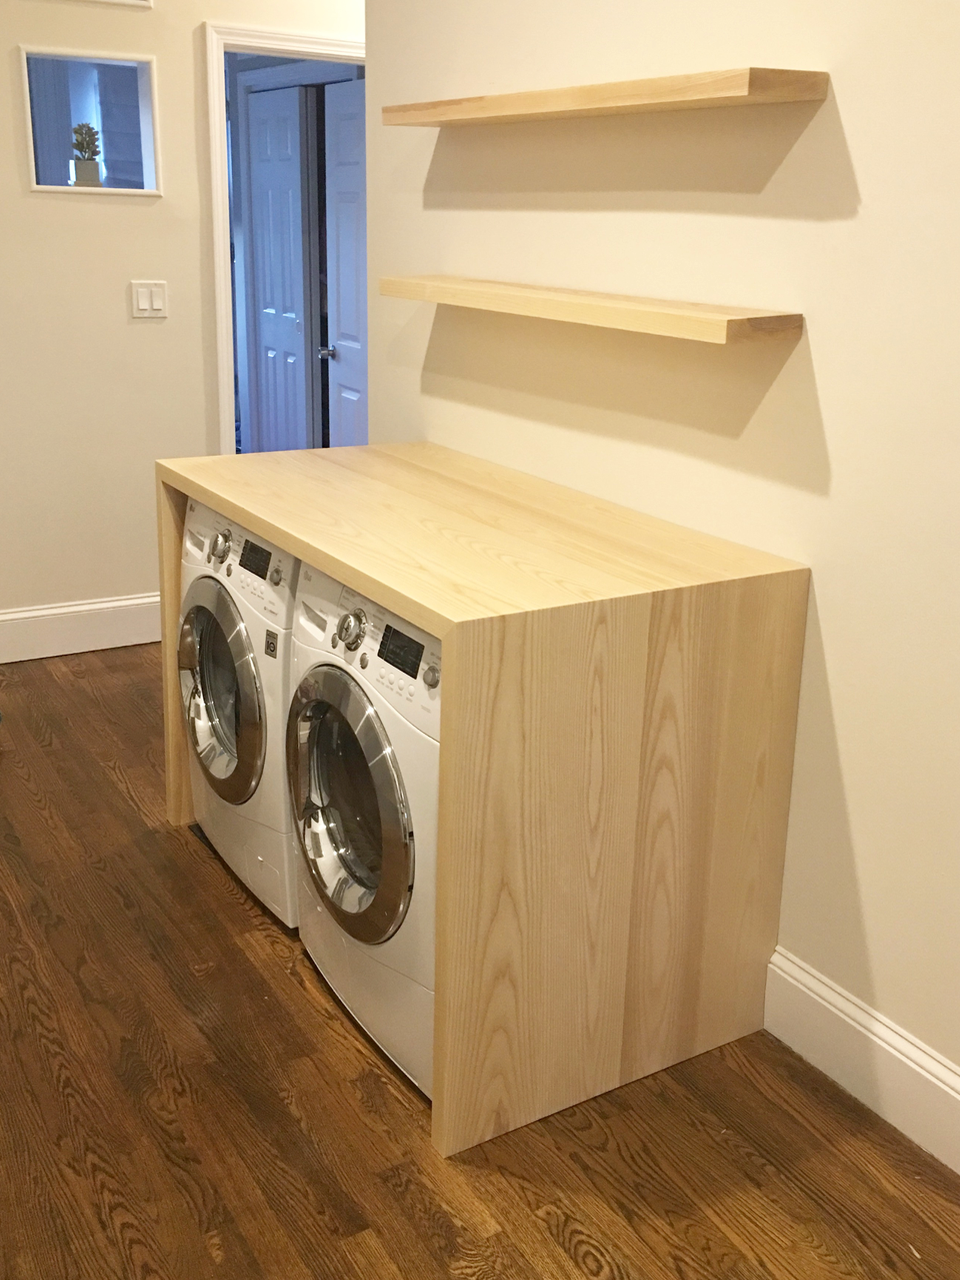 Laundry Counter and Shelves -